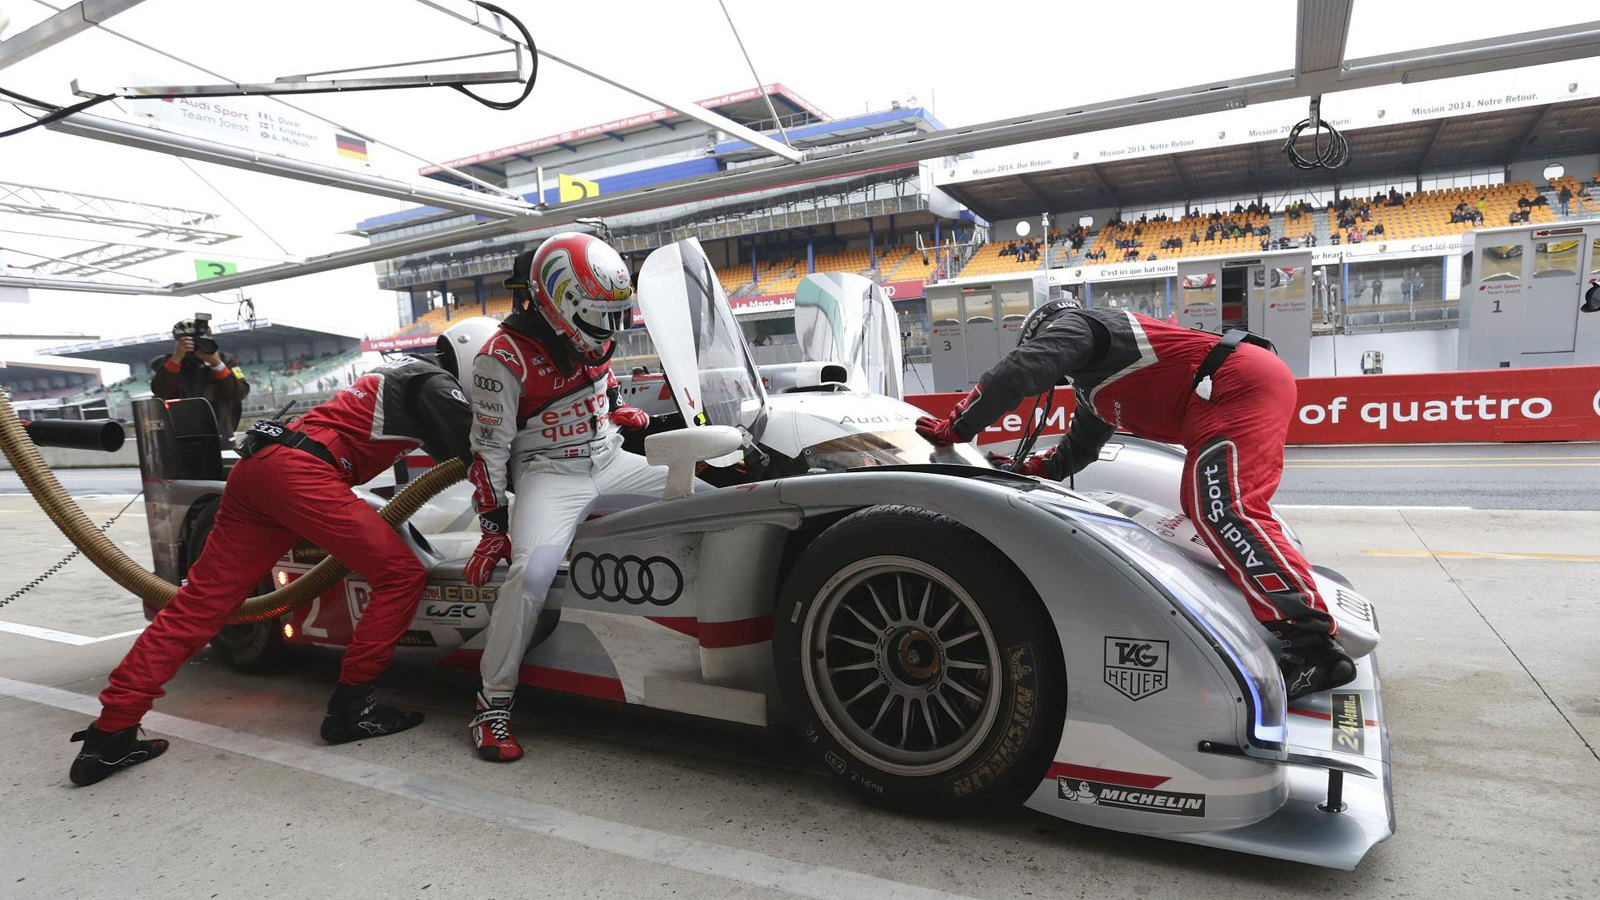 Audi during official testing for 2013's 24 Hours of Le Mans